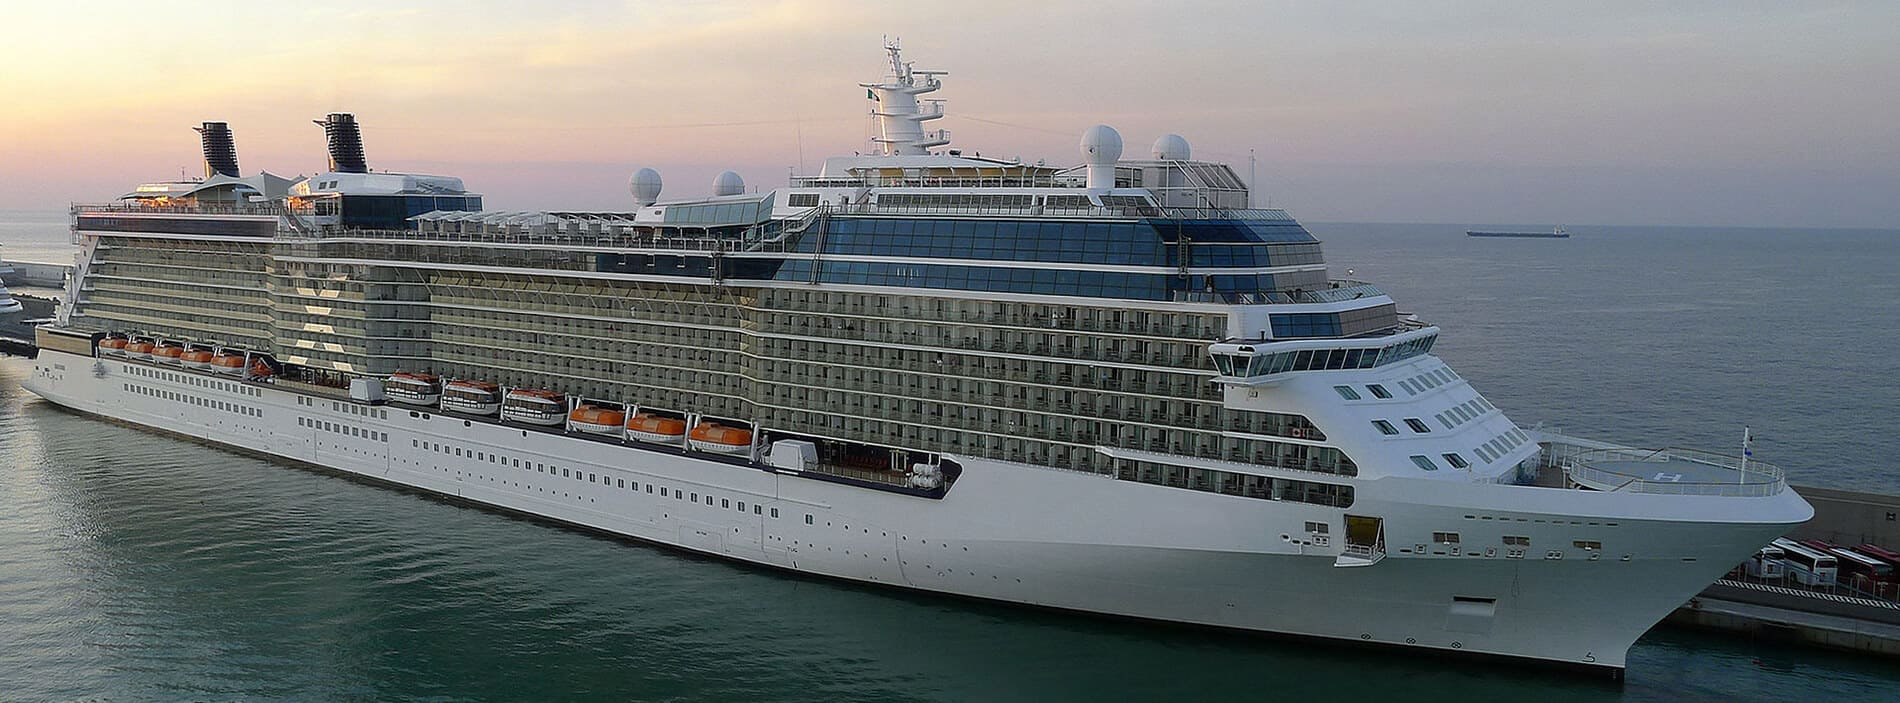 A Cruise Liner, gets ready to set sail after obtaining a ship loan